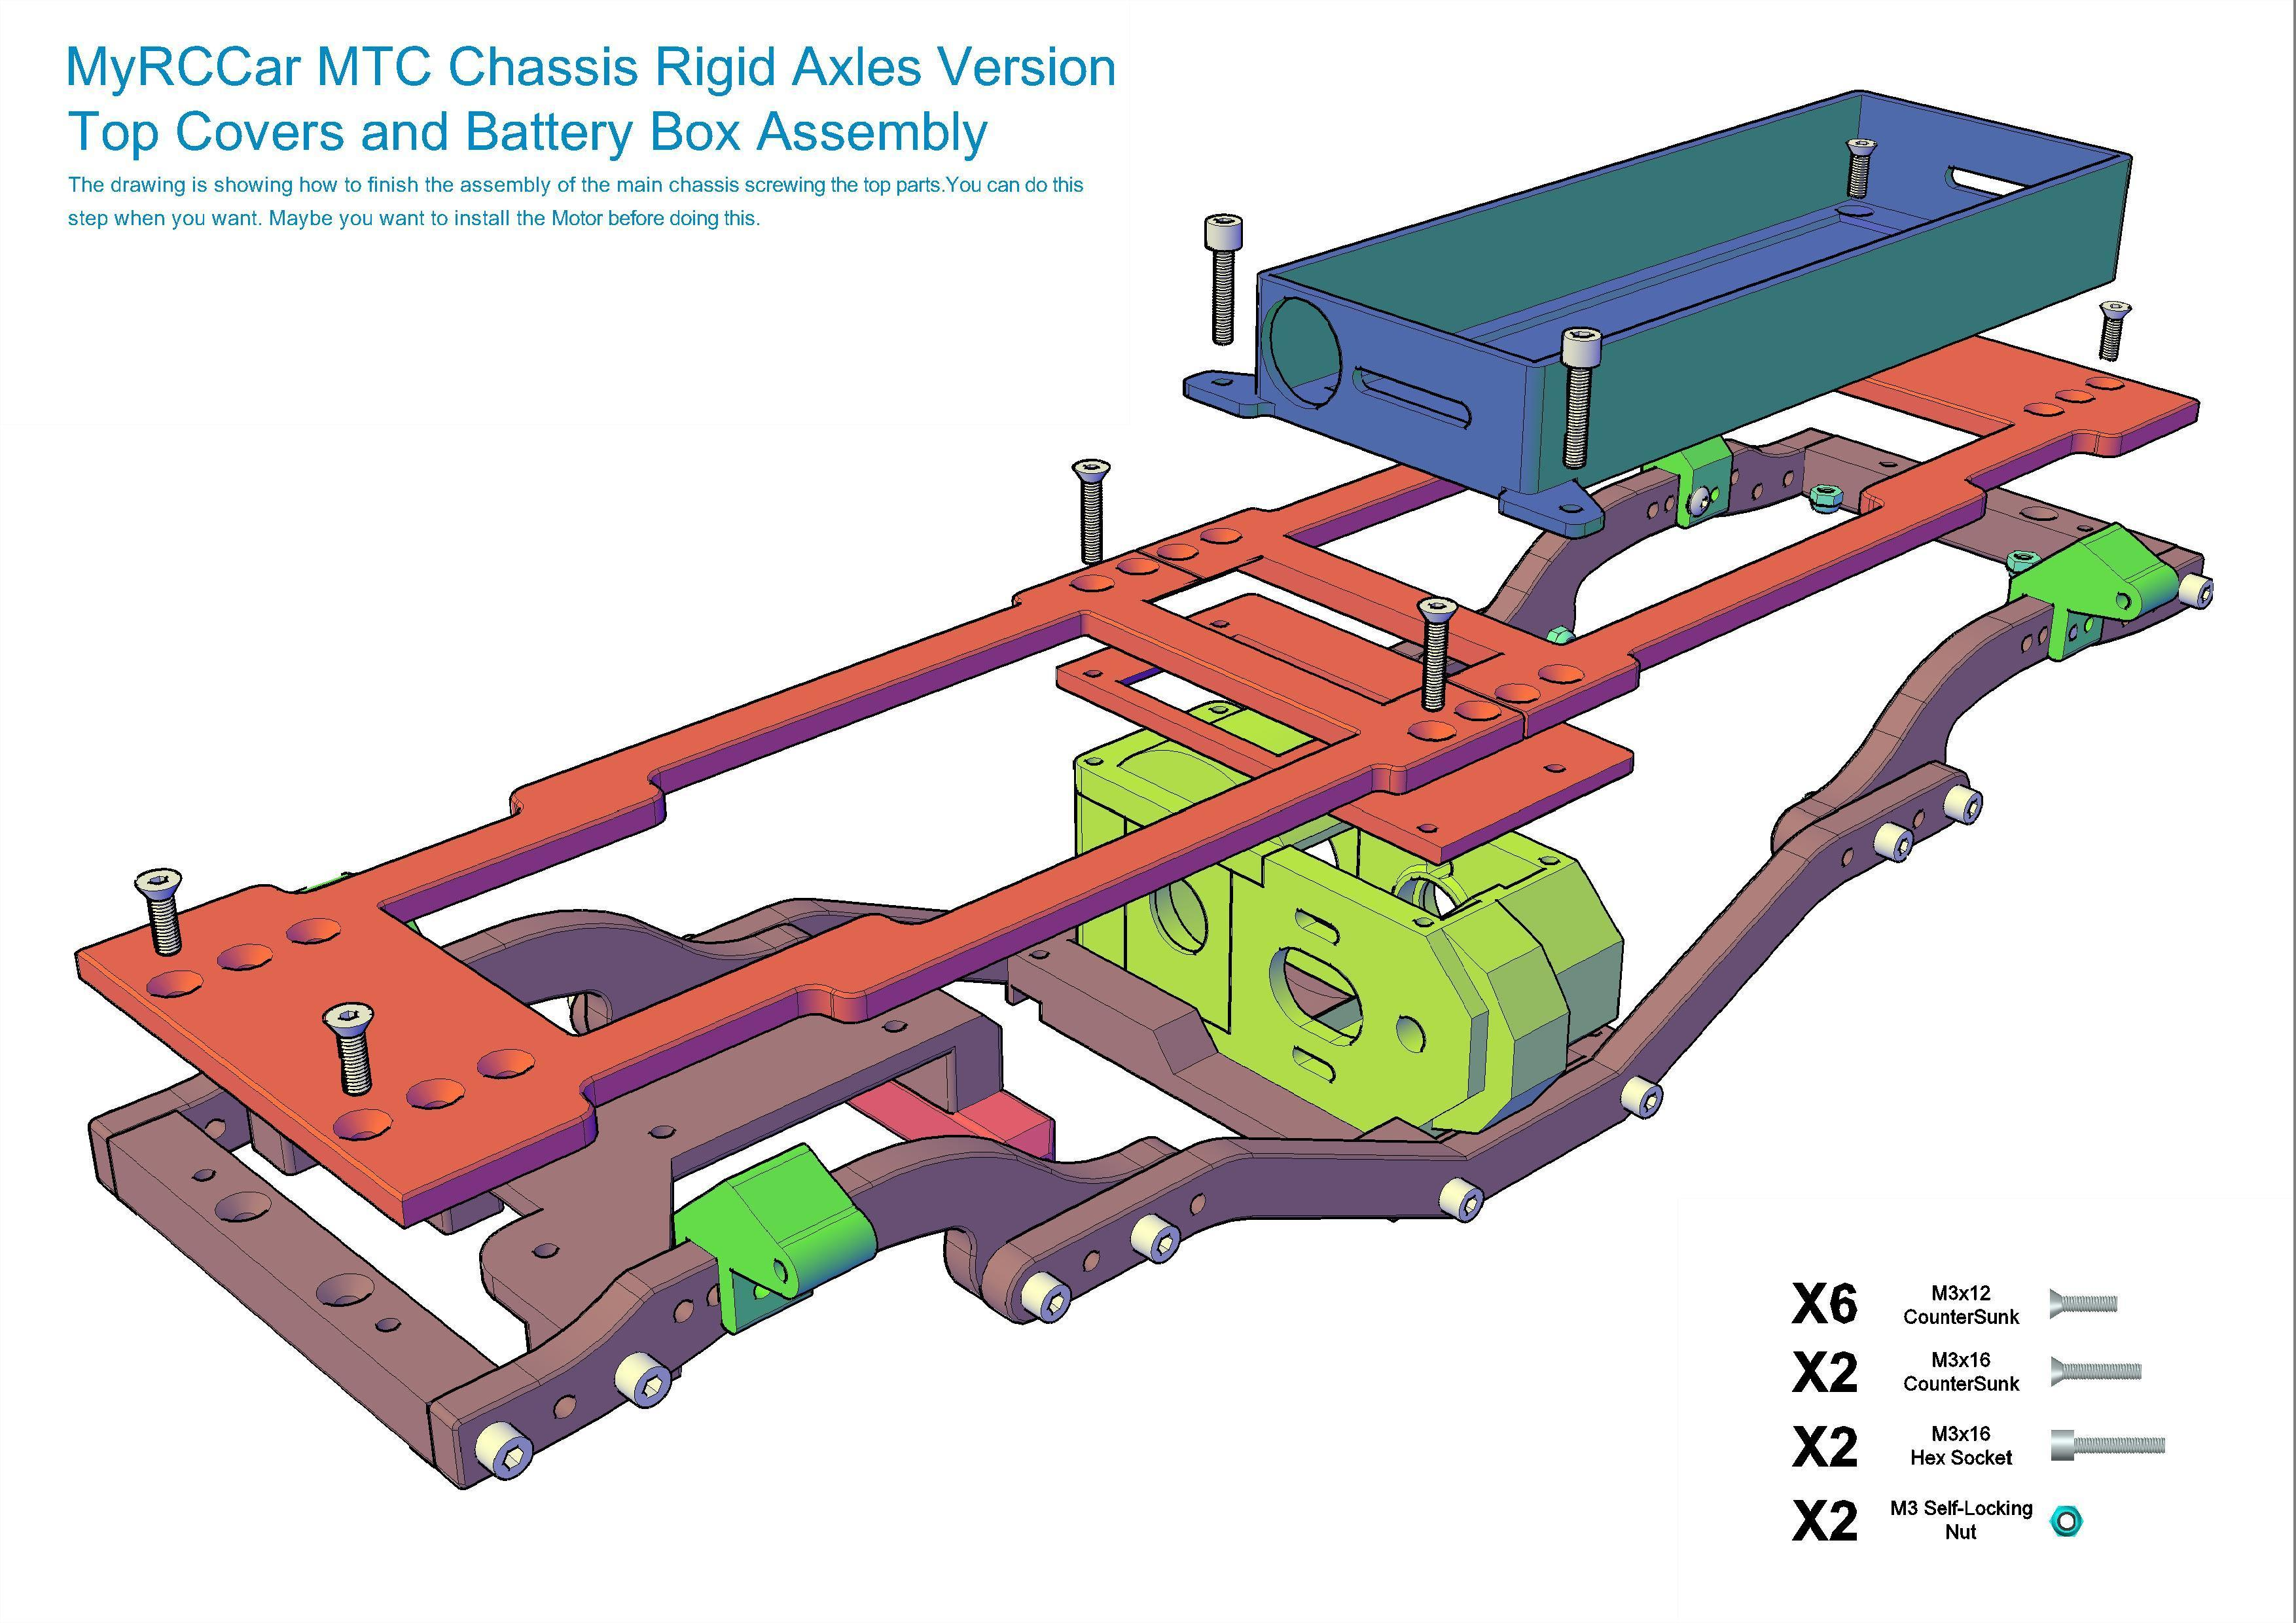 MTC_RigidAxles_drawing2.jpg Download STL file MyRCCar 1/10 MTC Chassis Rigid Axles Version. Customizable chassis for Monster, Crawler or Scale RC Car • 3D printing design, dlb5